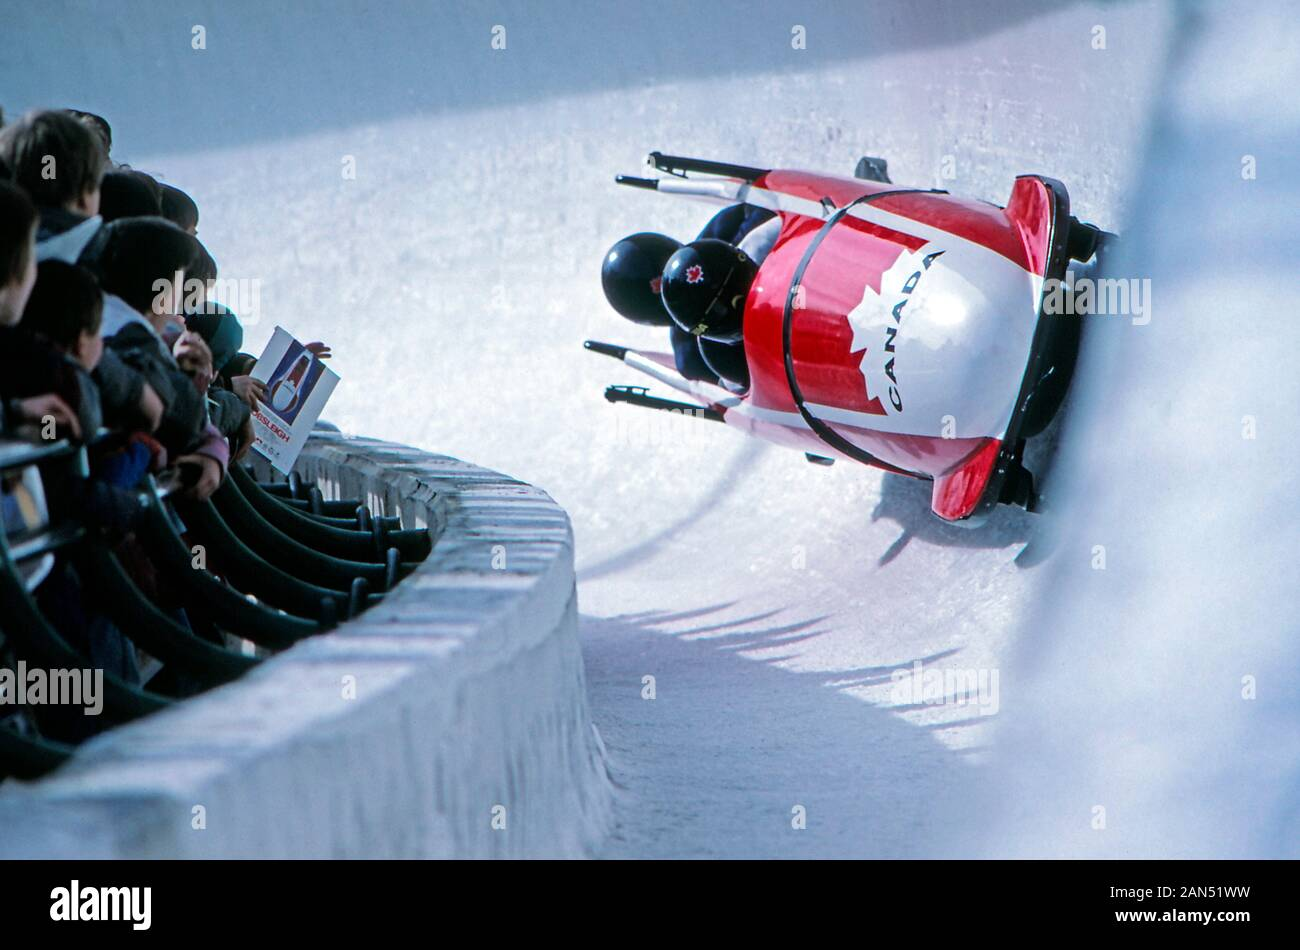 bobsled-team-on-a-luge-track-in-canada-2AN51WW.jpg